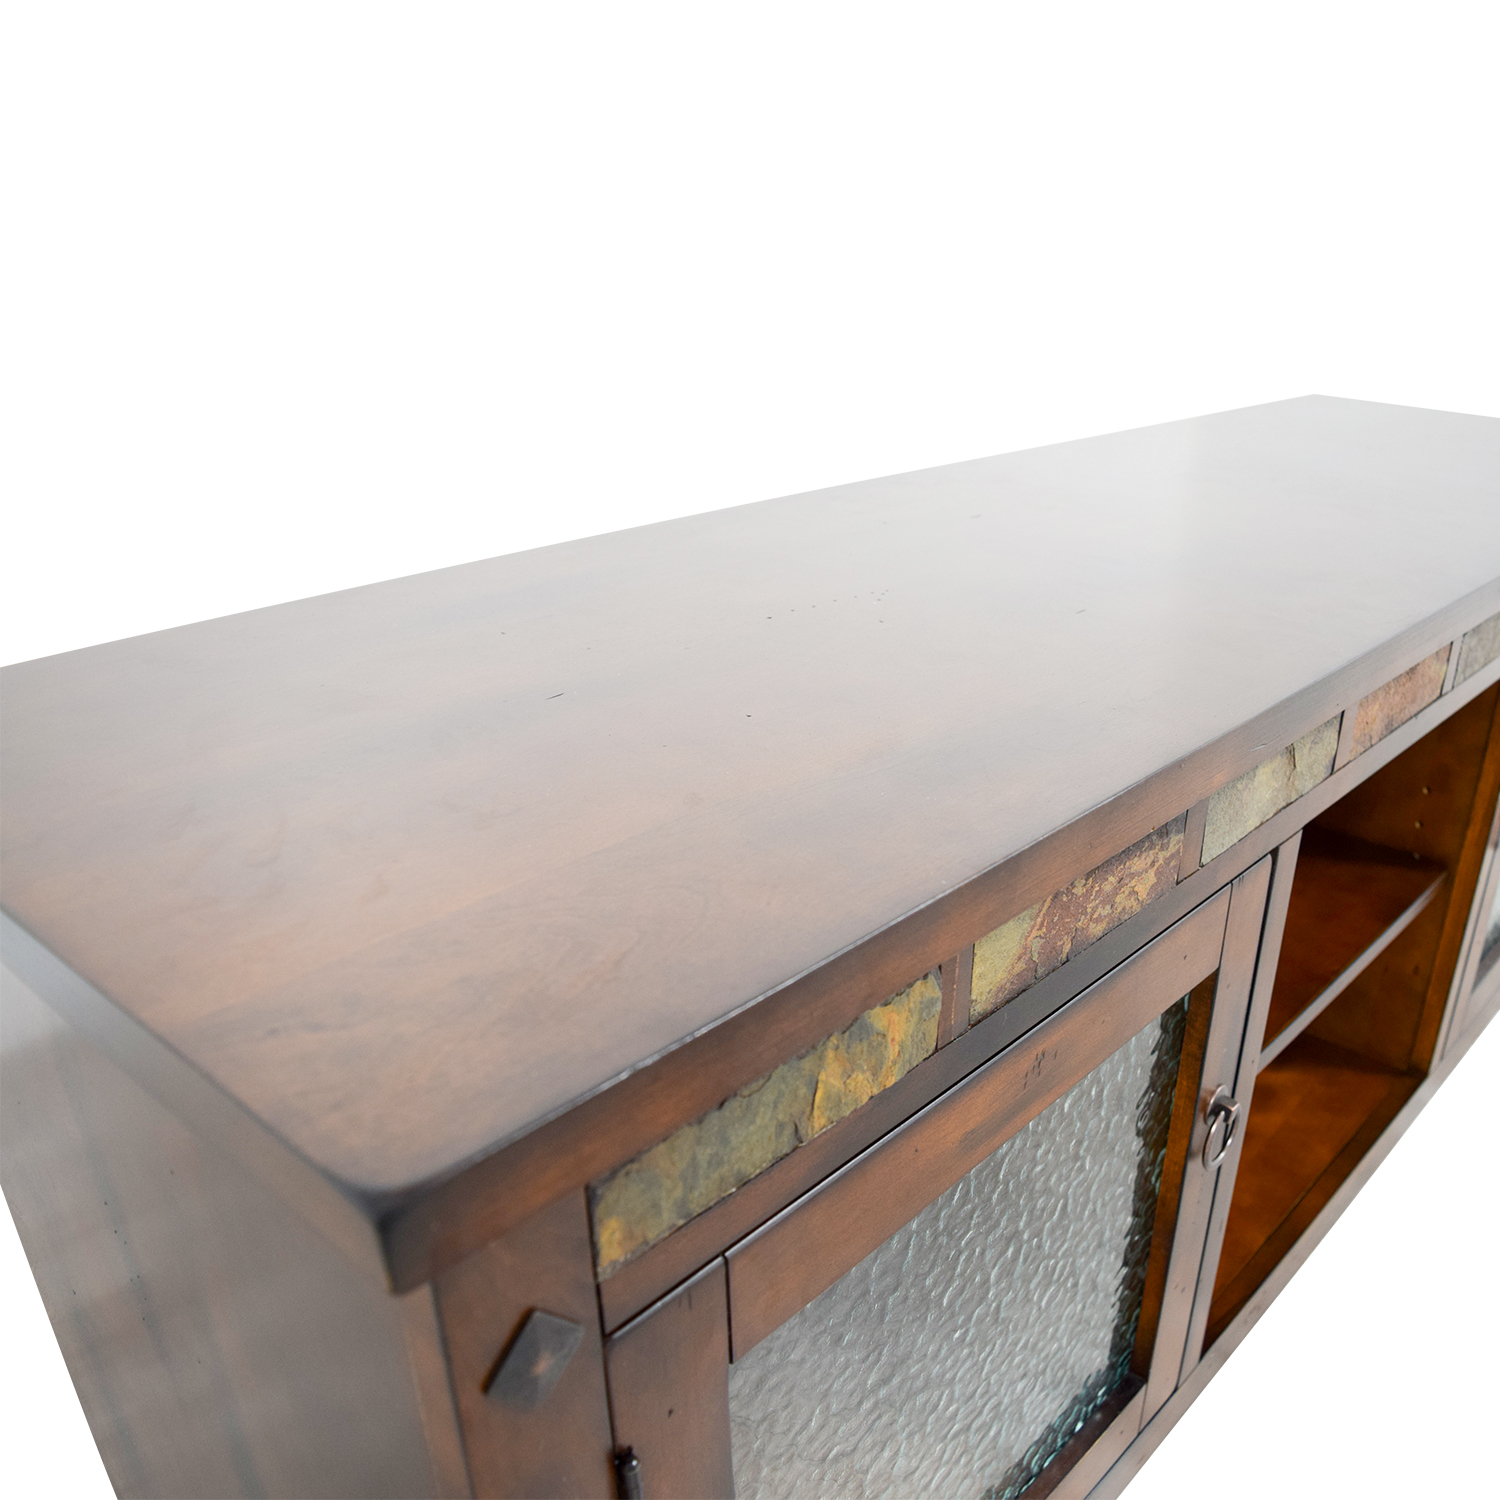 new concept 27736 2be70 75% OFF - Bob's Discount Furniture Bob's Furniture Santa Fe Console /  Storage